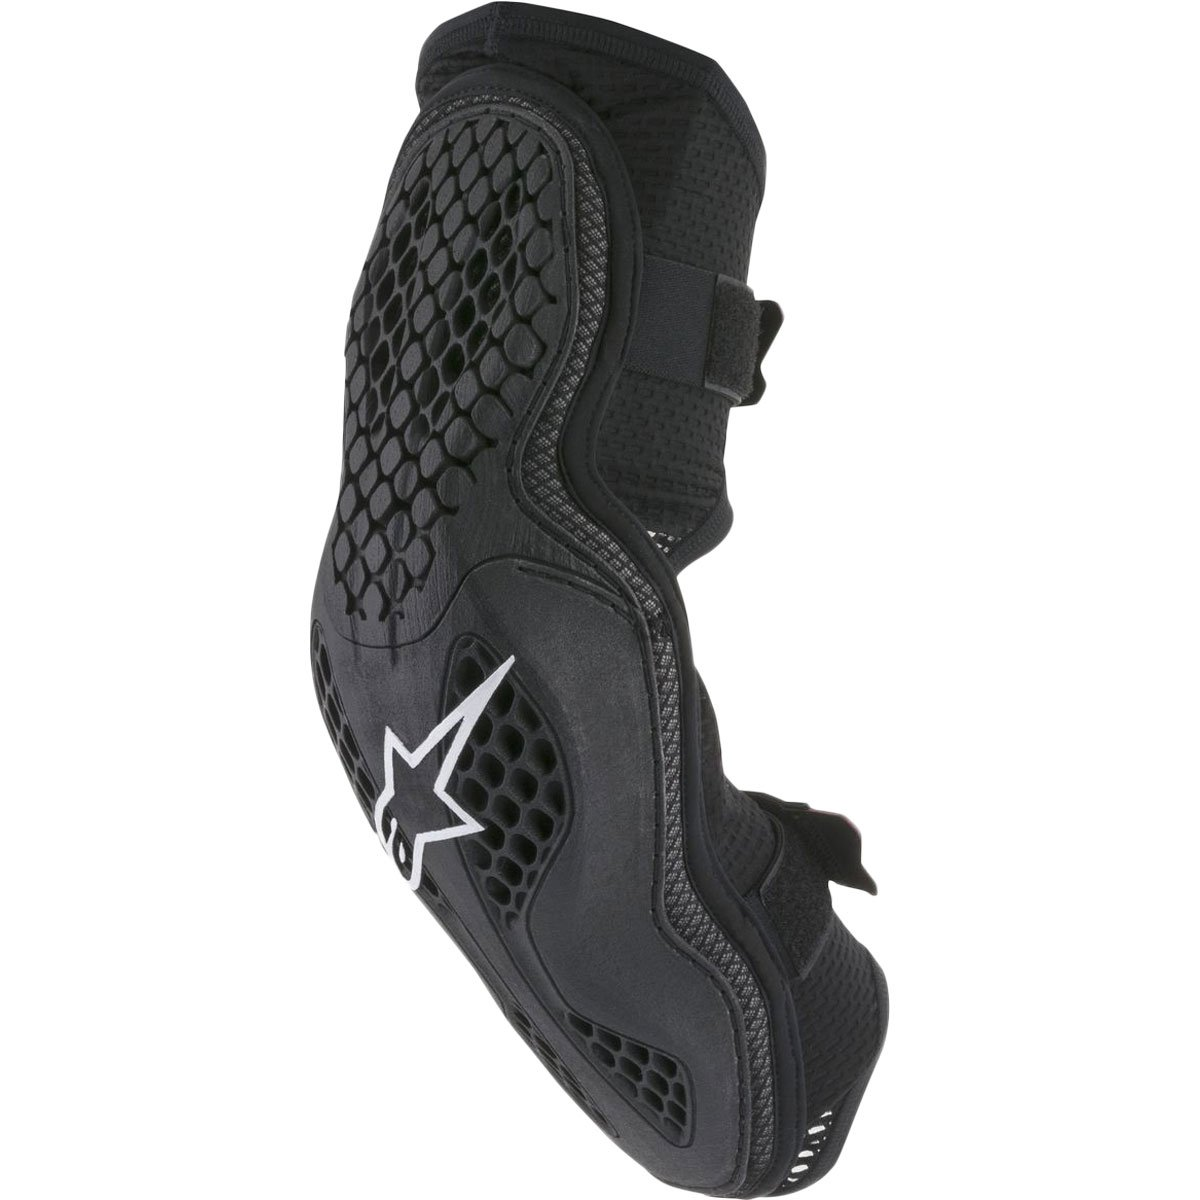 Alpinestars Sequence Elbow Guards-2XL